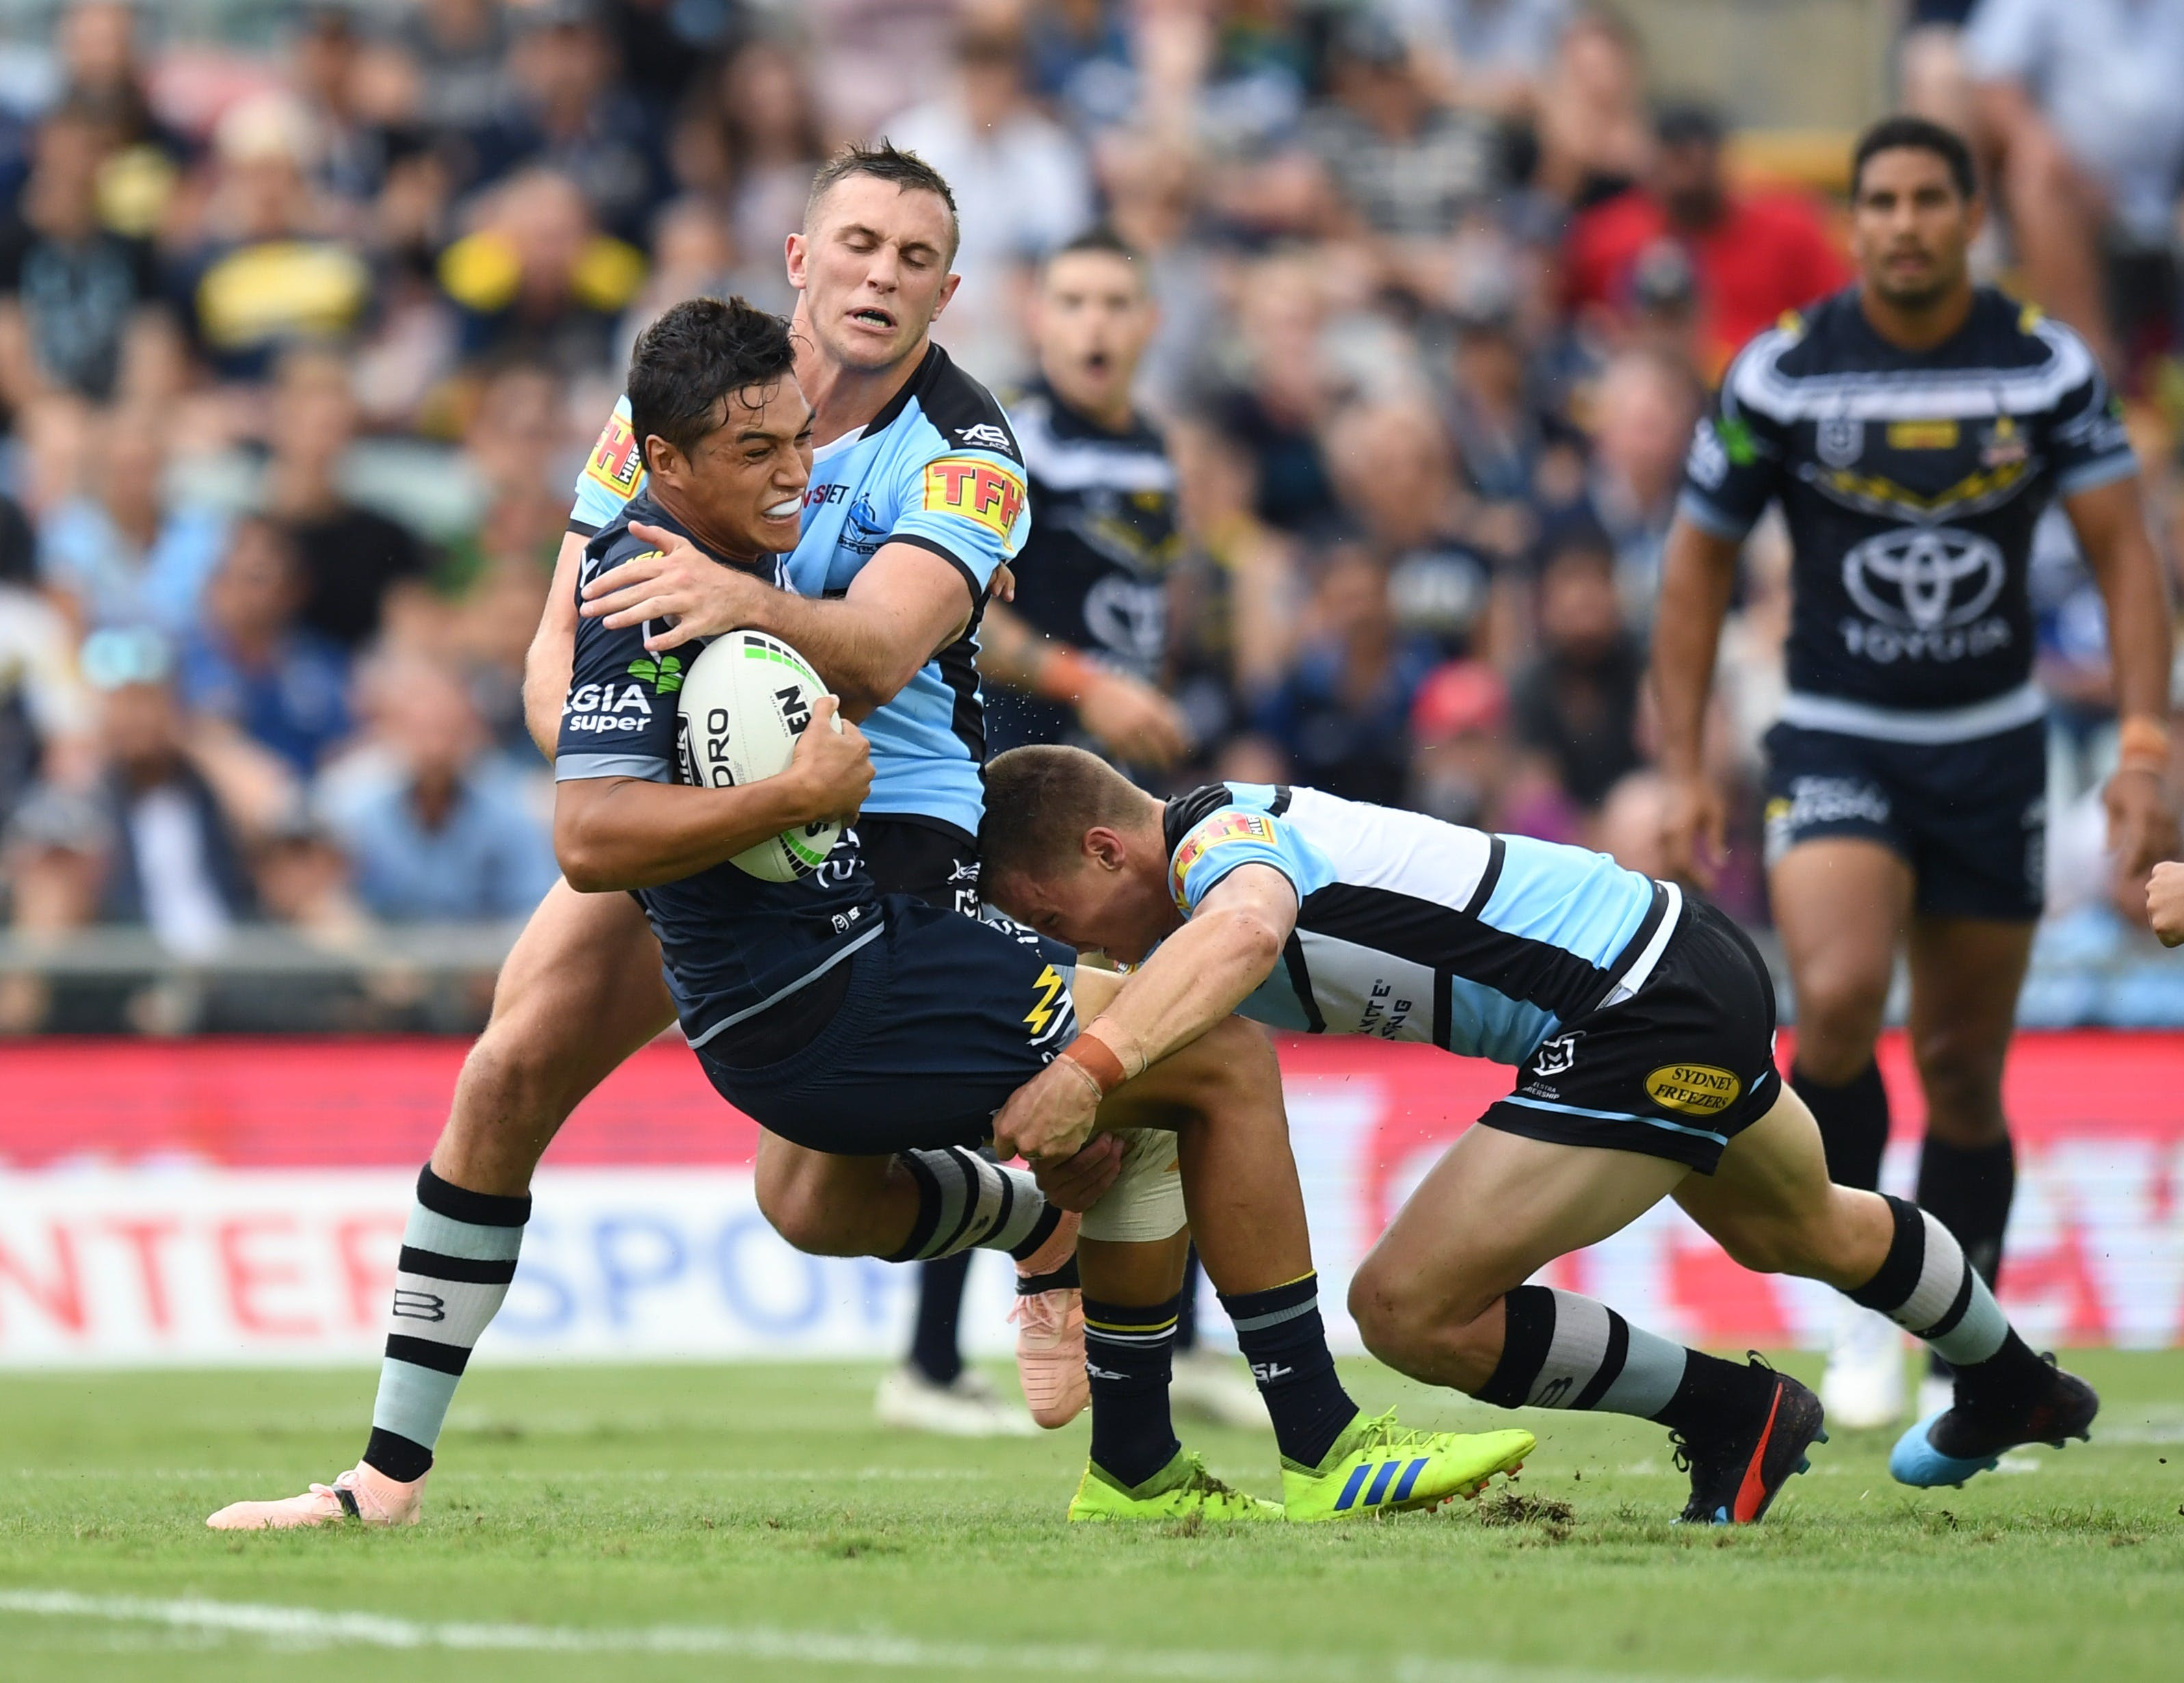 North Queensland Toyota Cowboys versus Cronulla Sharks Logo and Images